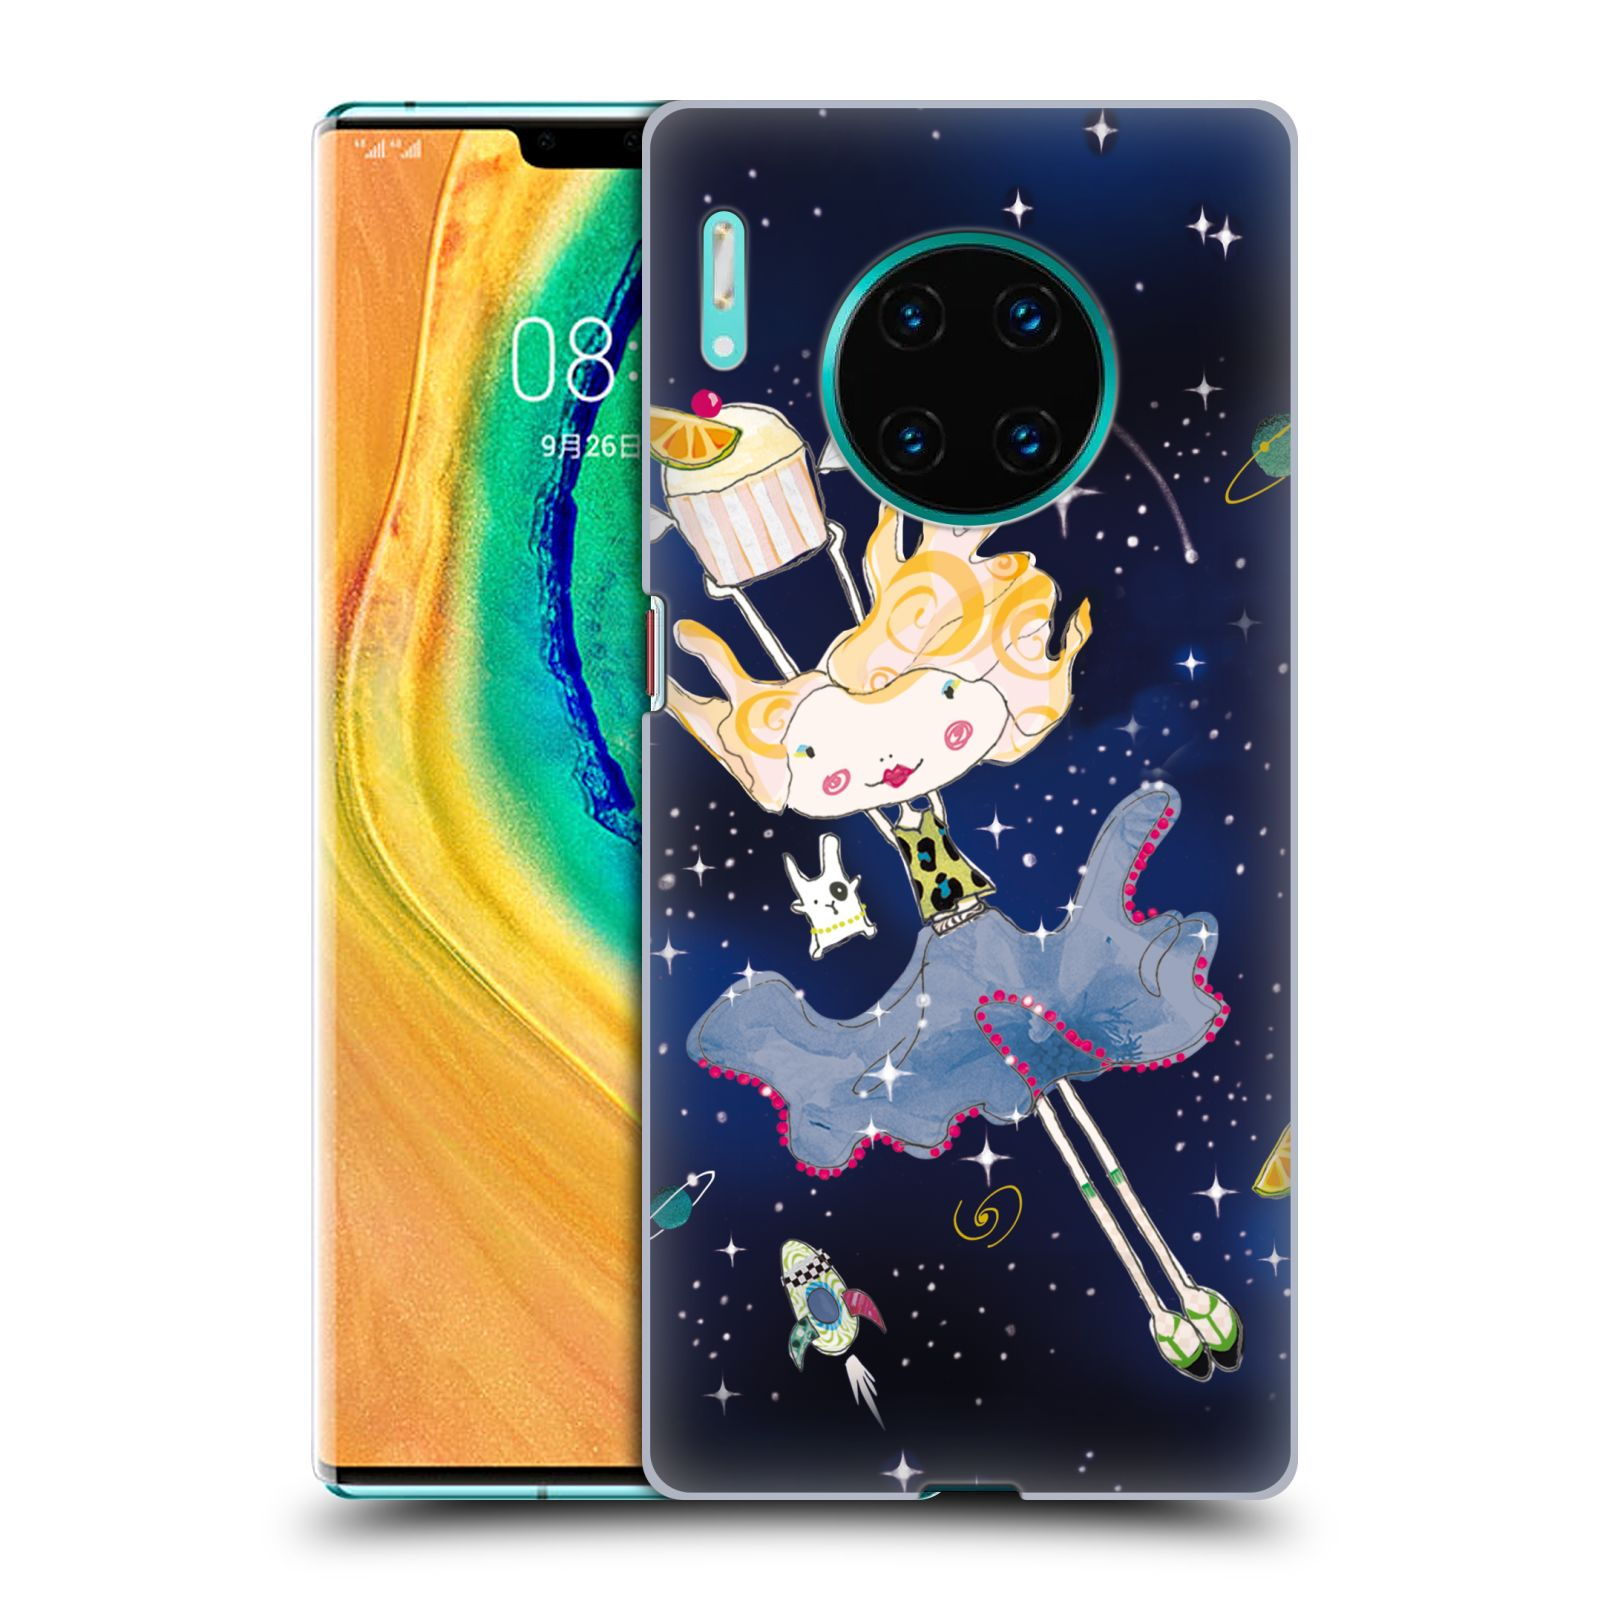 Official Turnowsky Tangerine Zebra Dream Dance Case for Huawei Mate 30 Pro / 5G